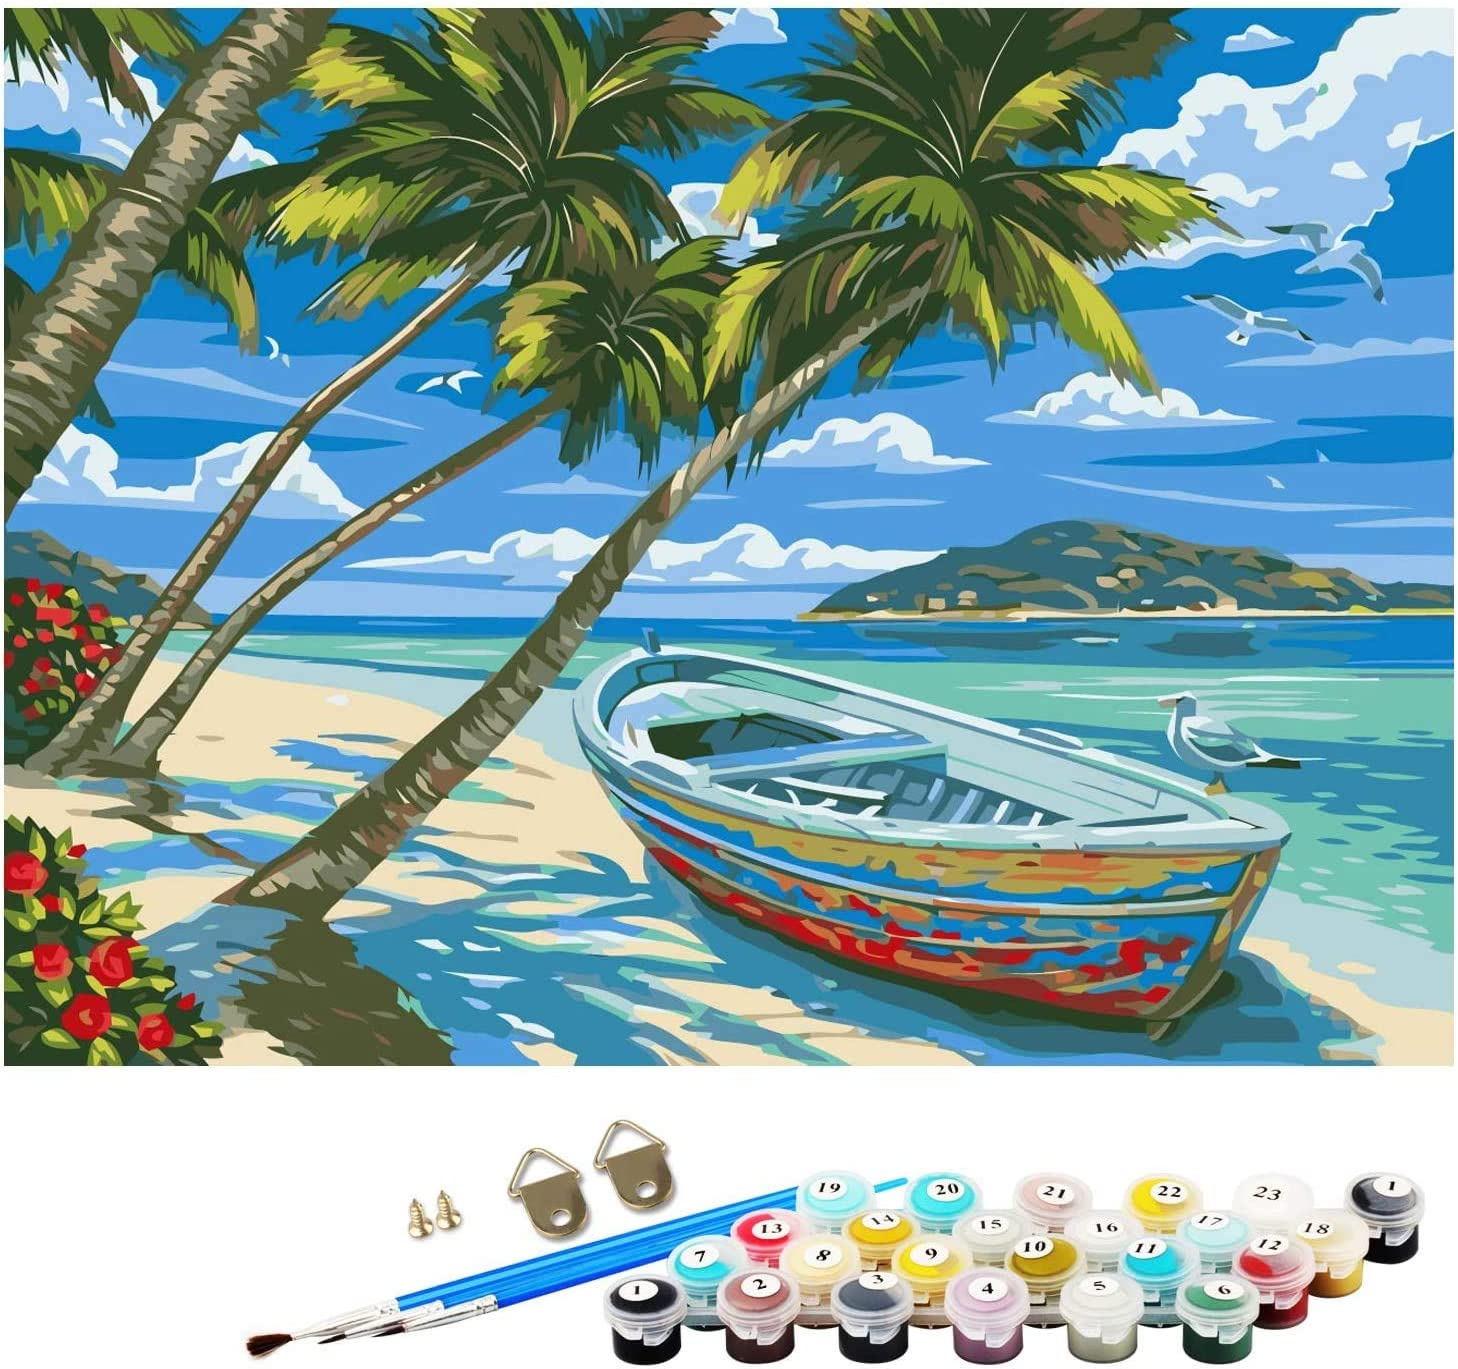 45x55 Beach Paint by Number,DIY Paint by Numbers for Adults Kids Beginner,Oil Painting on Canvas,Drawing Paintwork with Paint Brushes,16x20-Paint by Number Kits Arts Craft for Home Decor